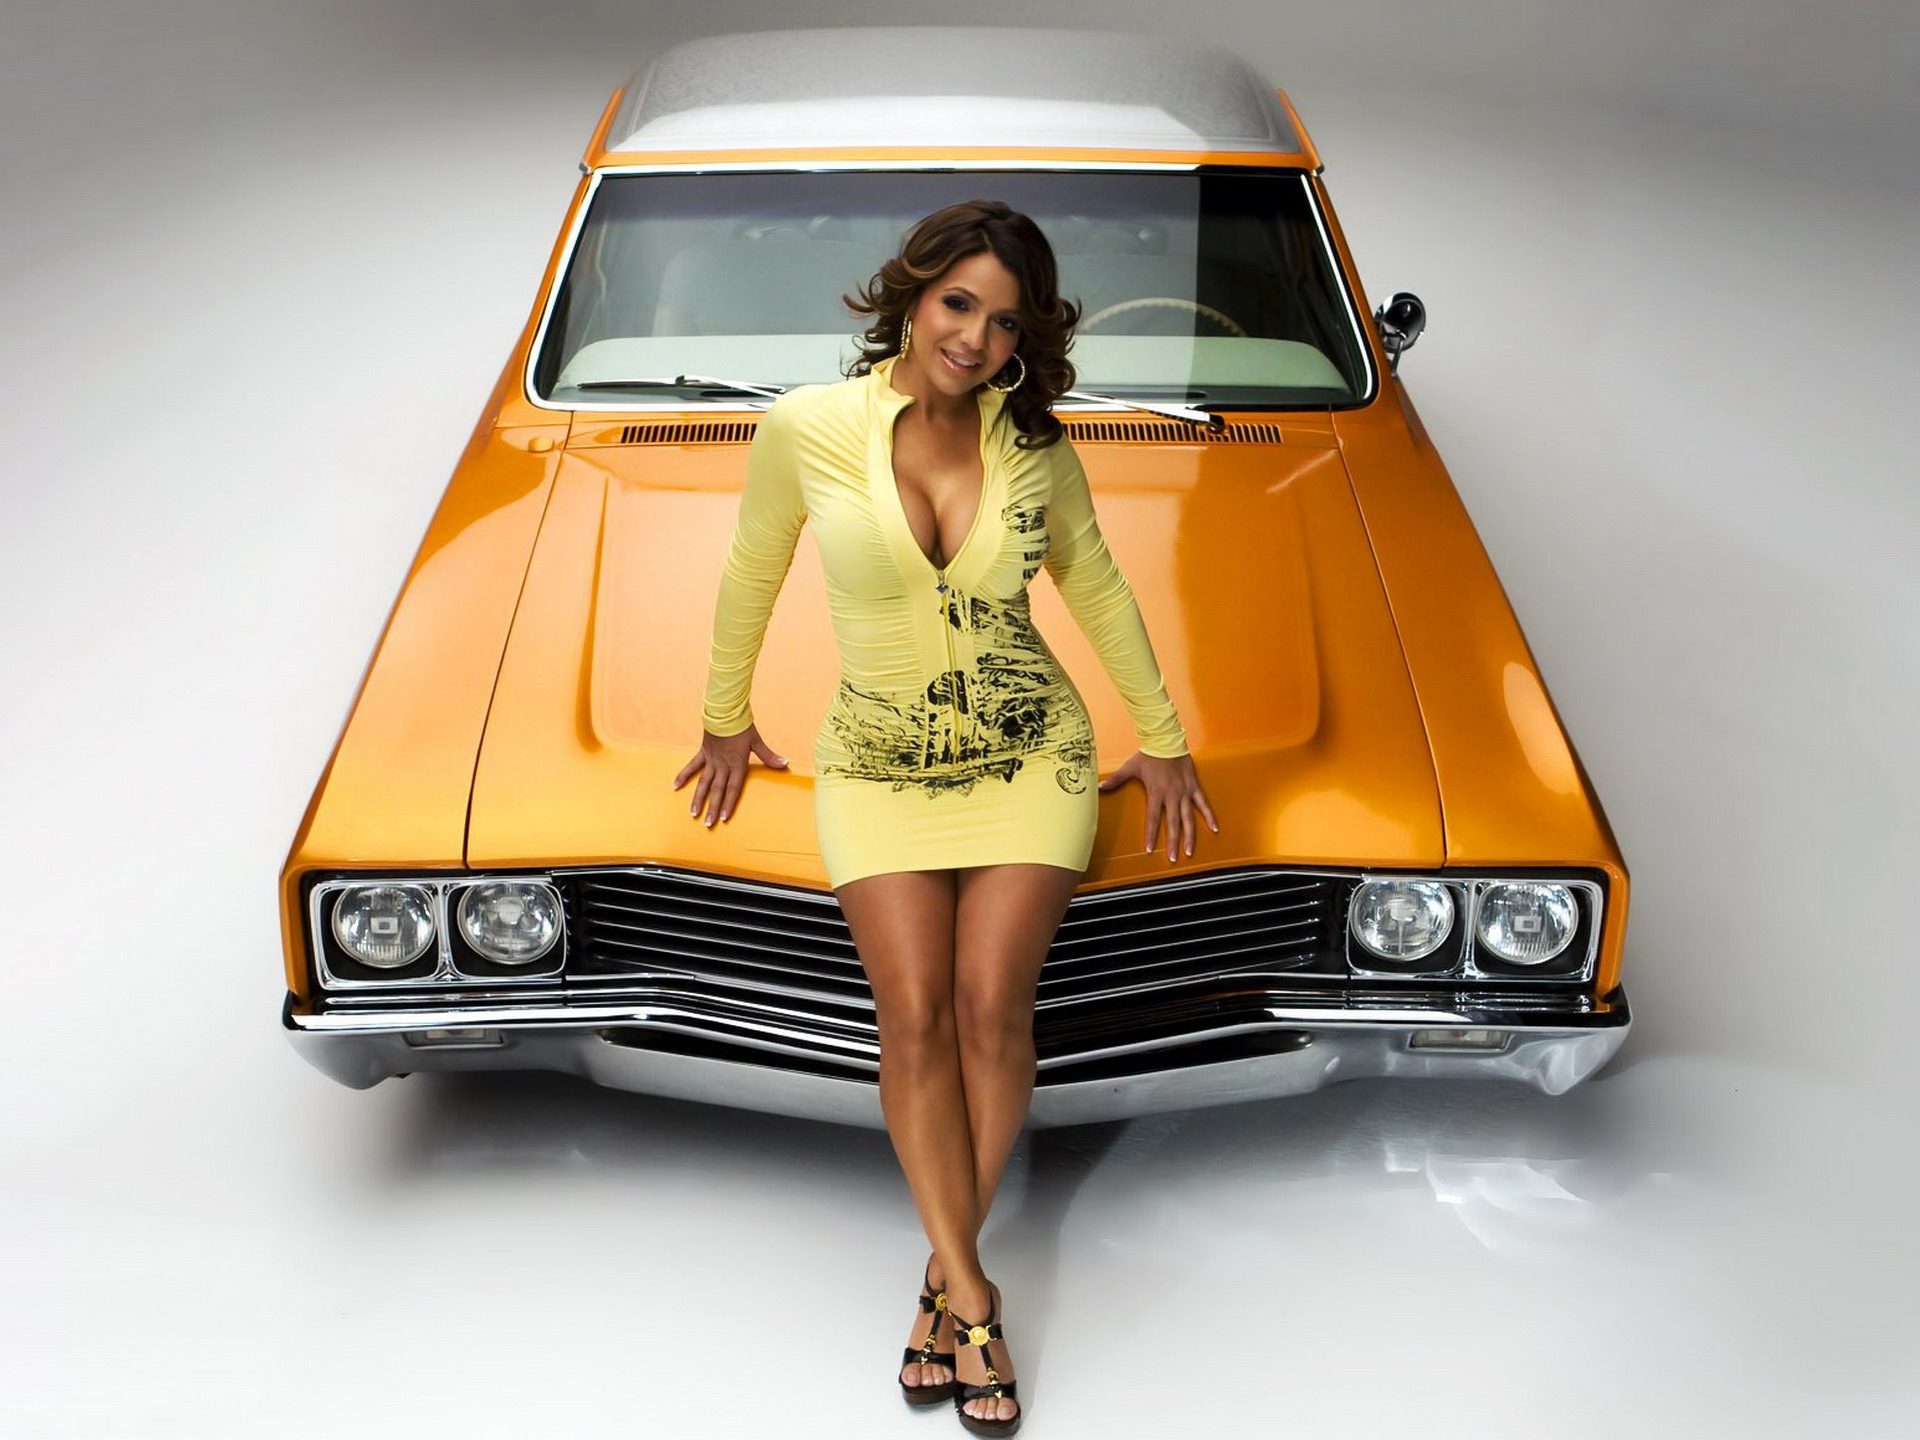 Girl and yellow car wallpapers girl and yellow car stock - Muscle car girl wallpaper ...